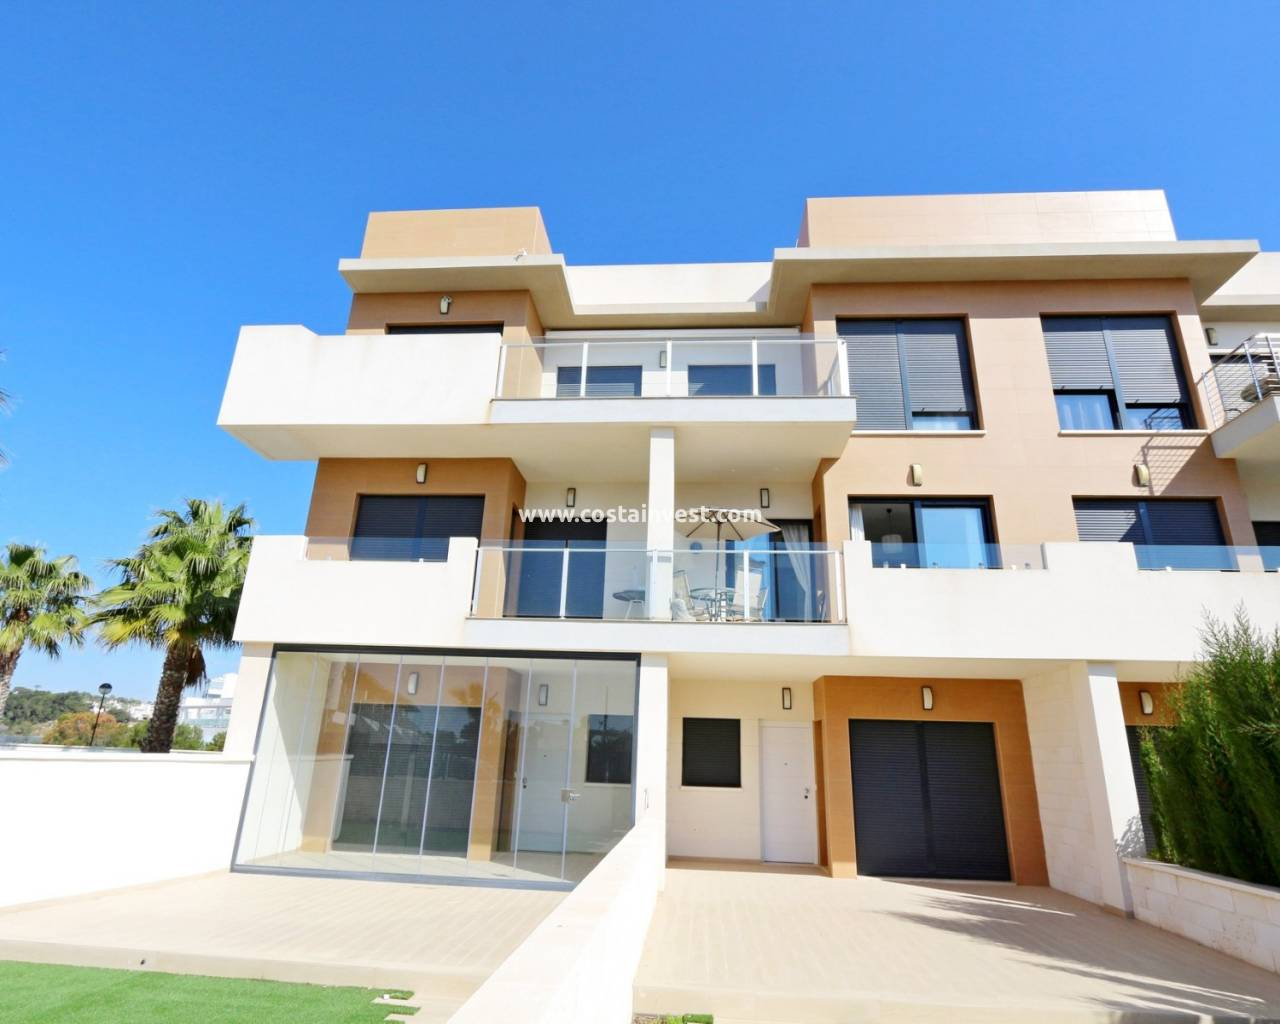 2 Bedroom 2 Bathroom La Zenia Apartment